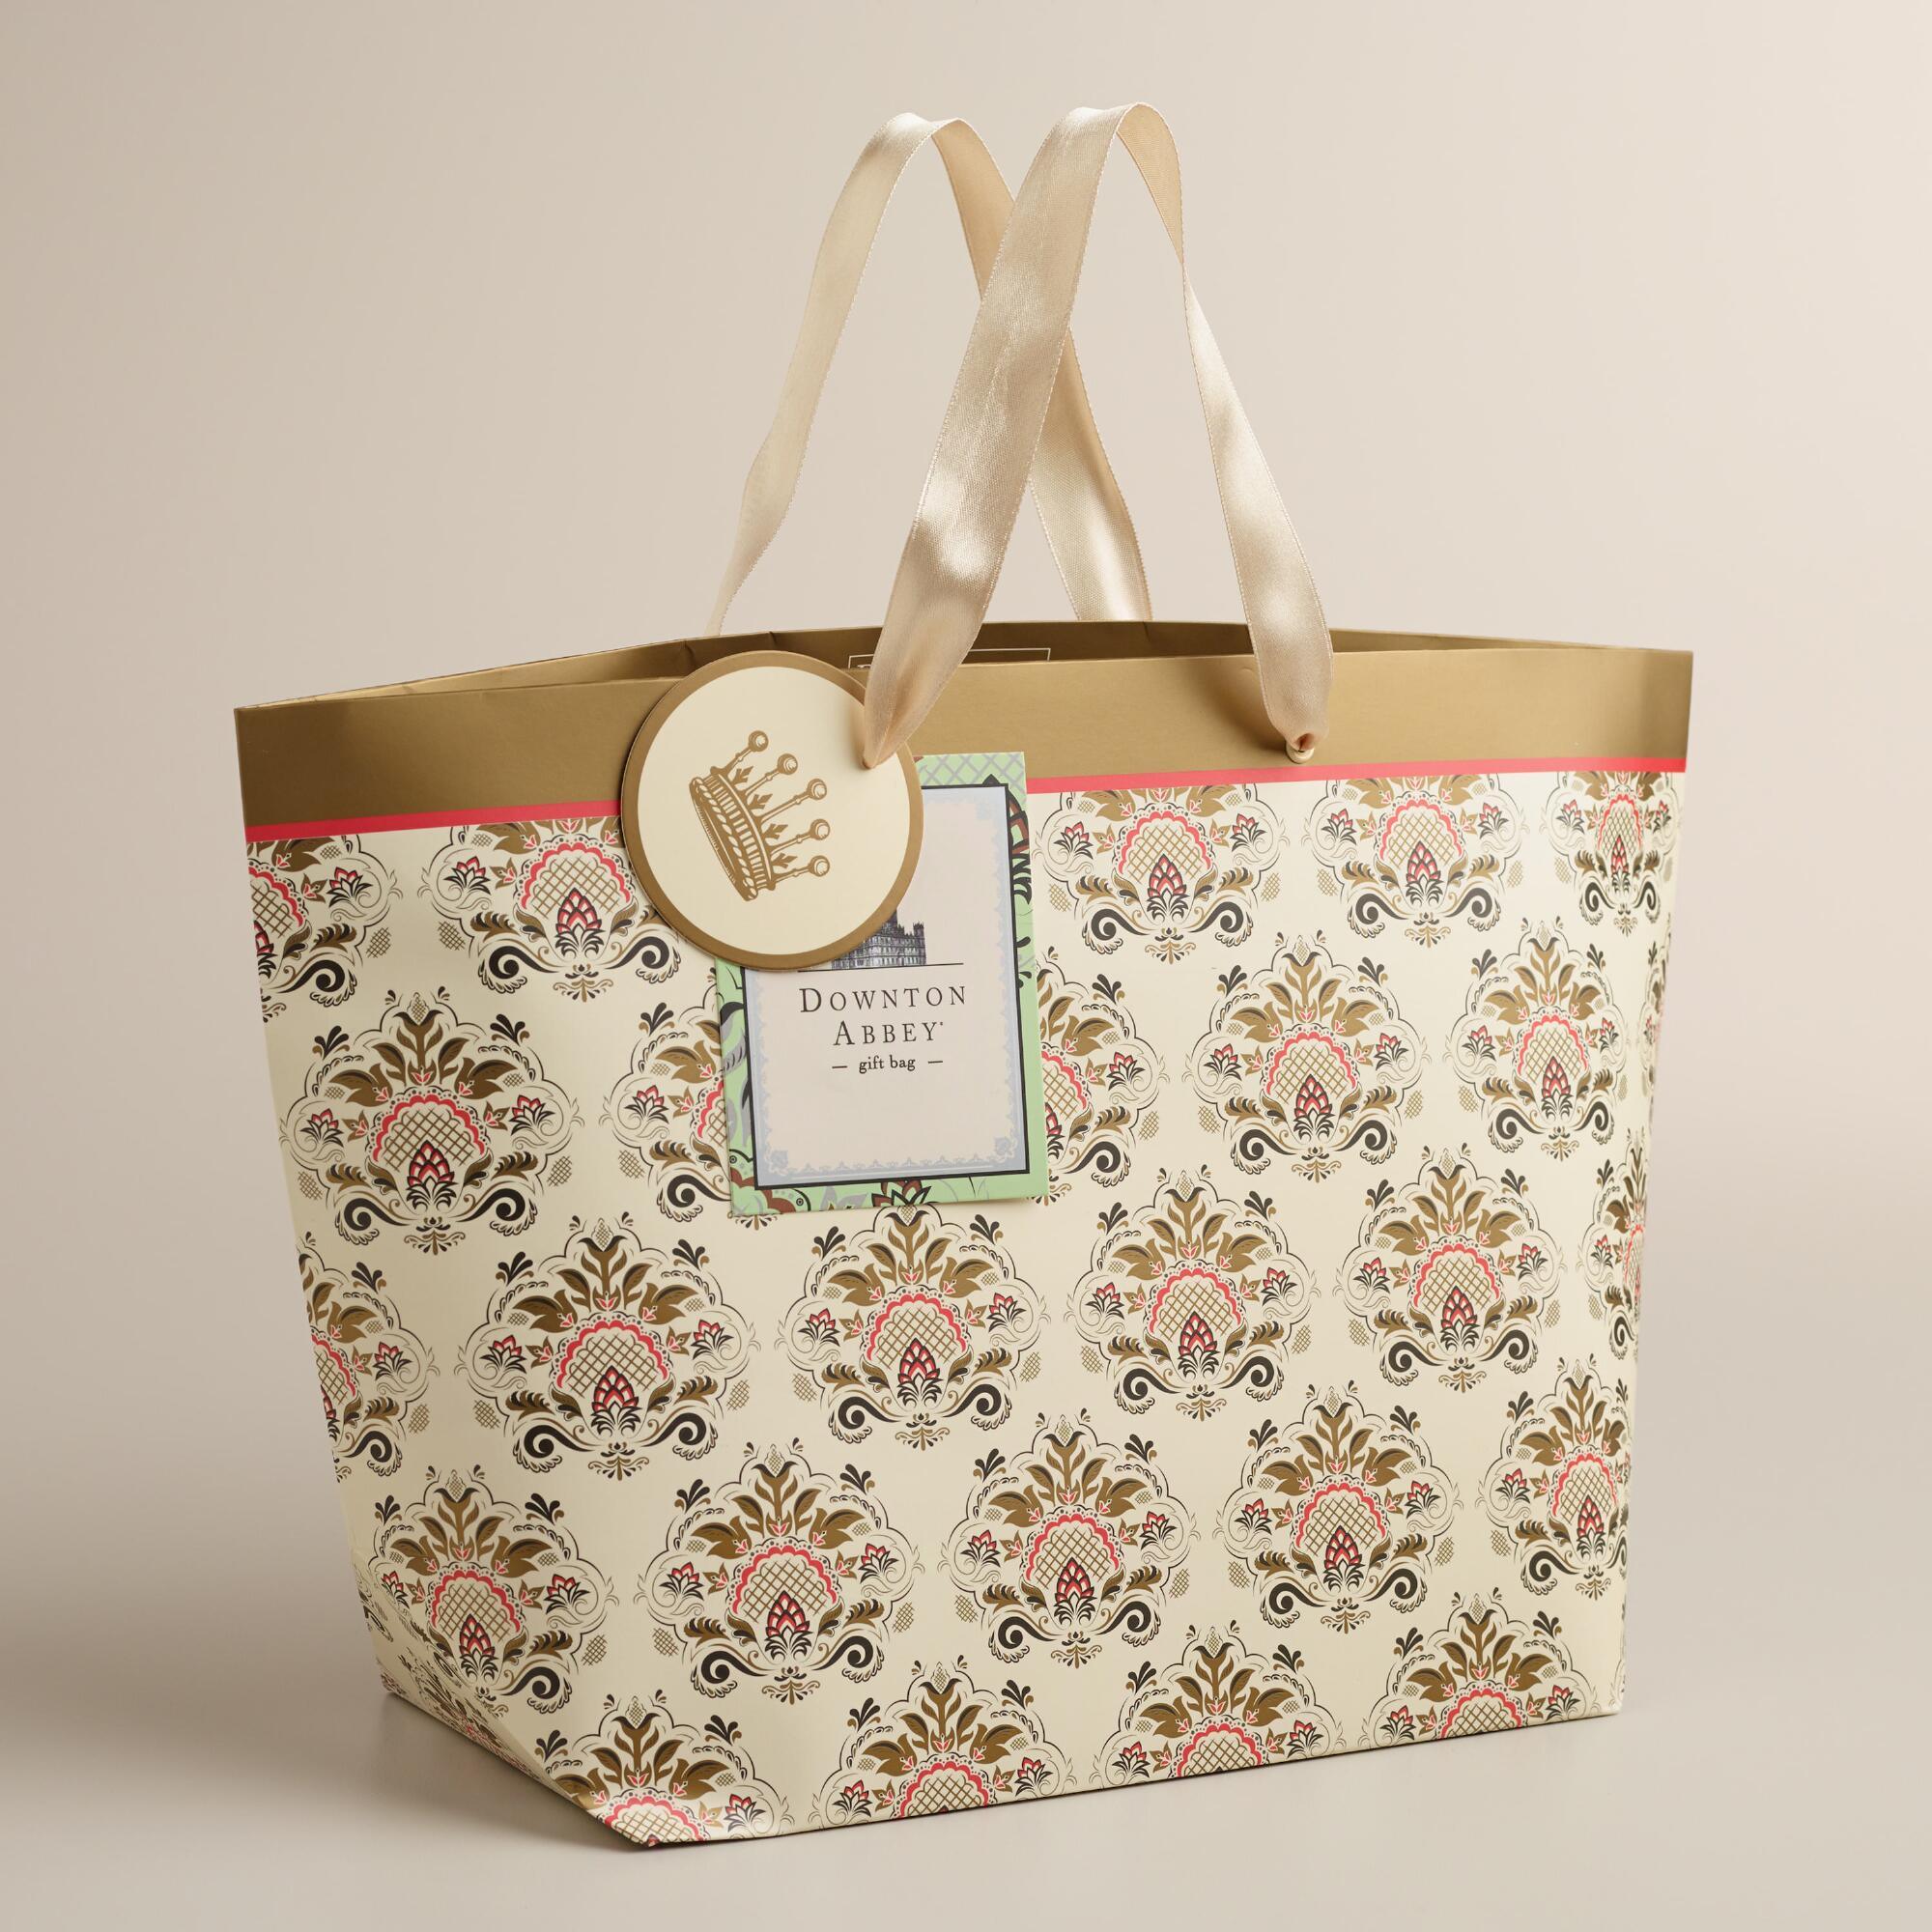 17 Best Images About Cost Plus World Market Food And More: Medium Downton Abbey Market Gift Bag